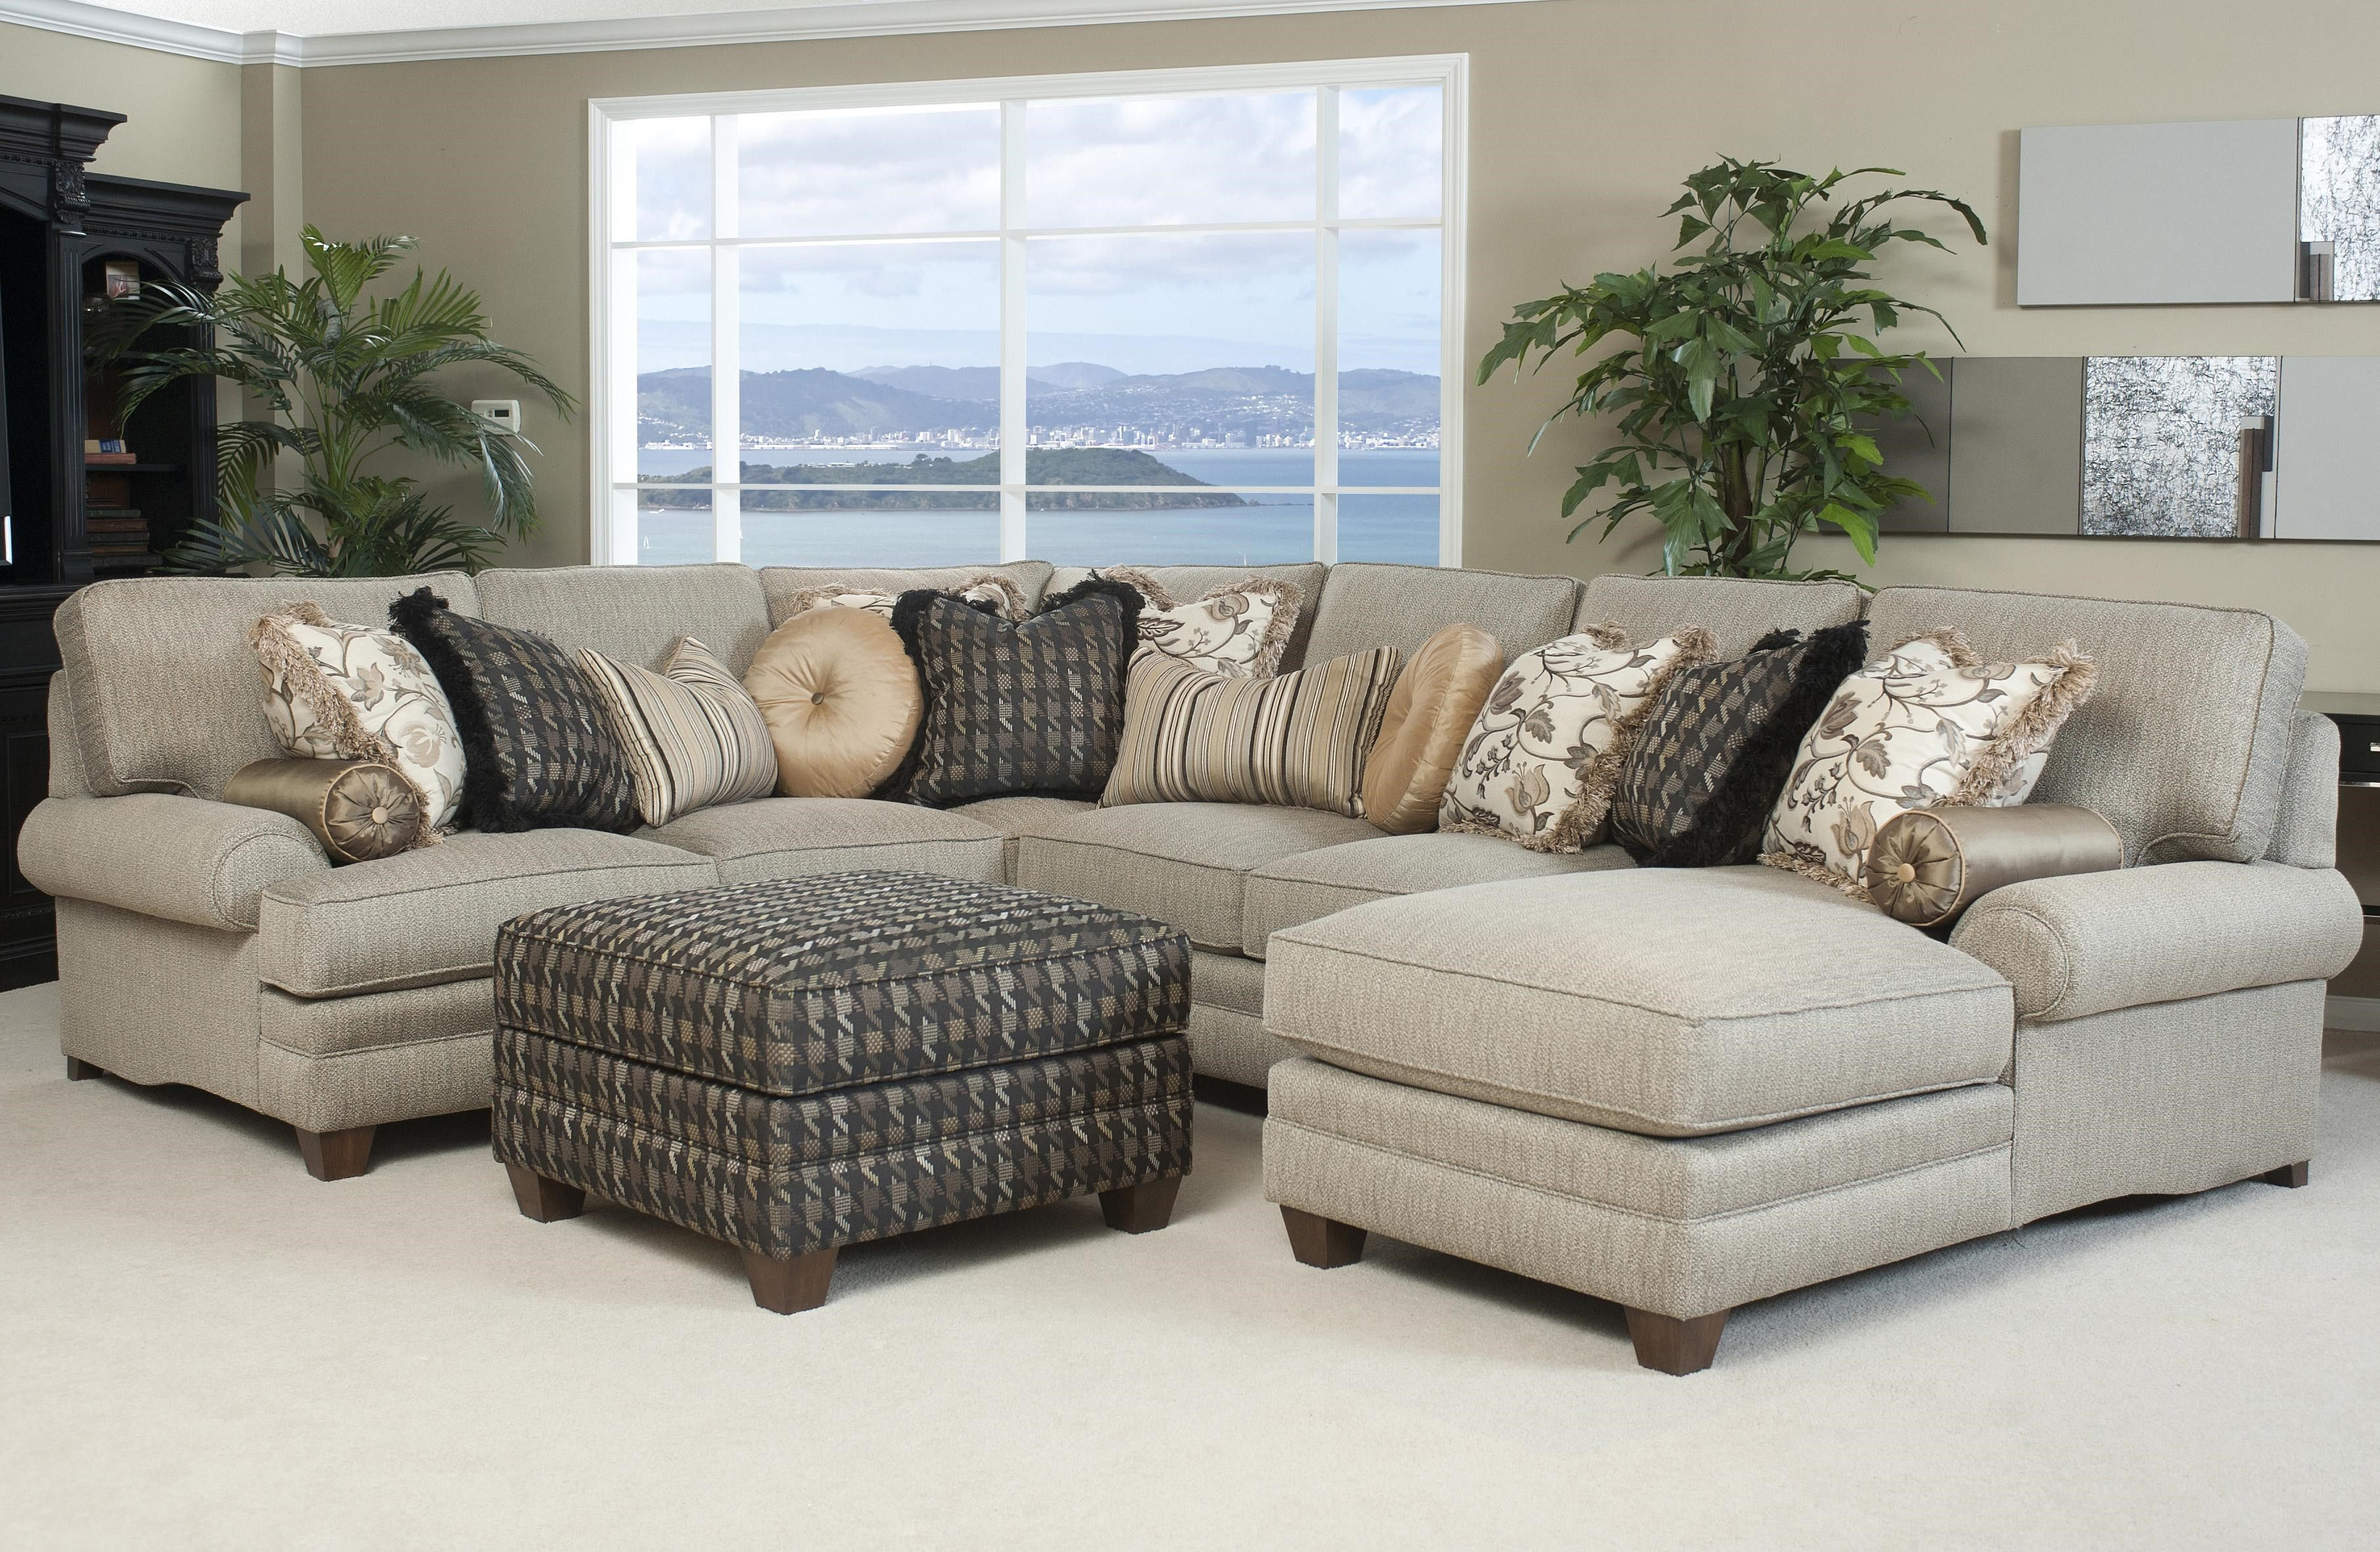 Nice Comfortable Couches Elegant Comfortable Couches 60 In Living Room Sof Comfortable Sectional Sofa Sectional Sofa With Chaise Sectional Sofa With Recliner